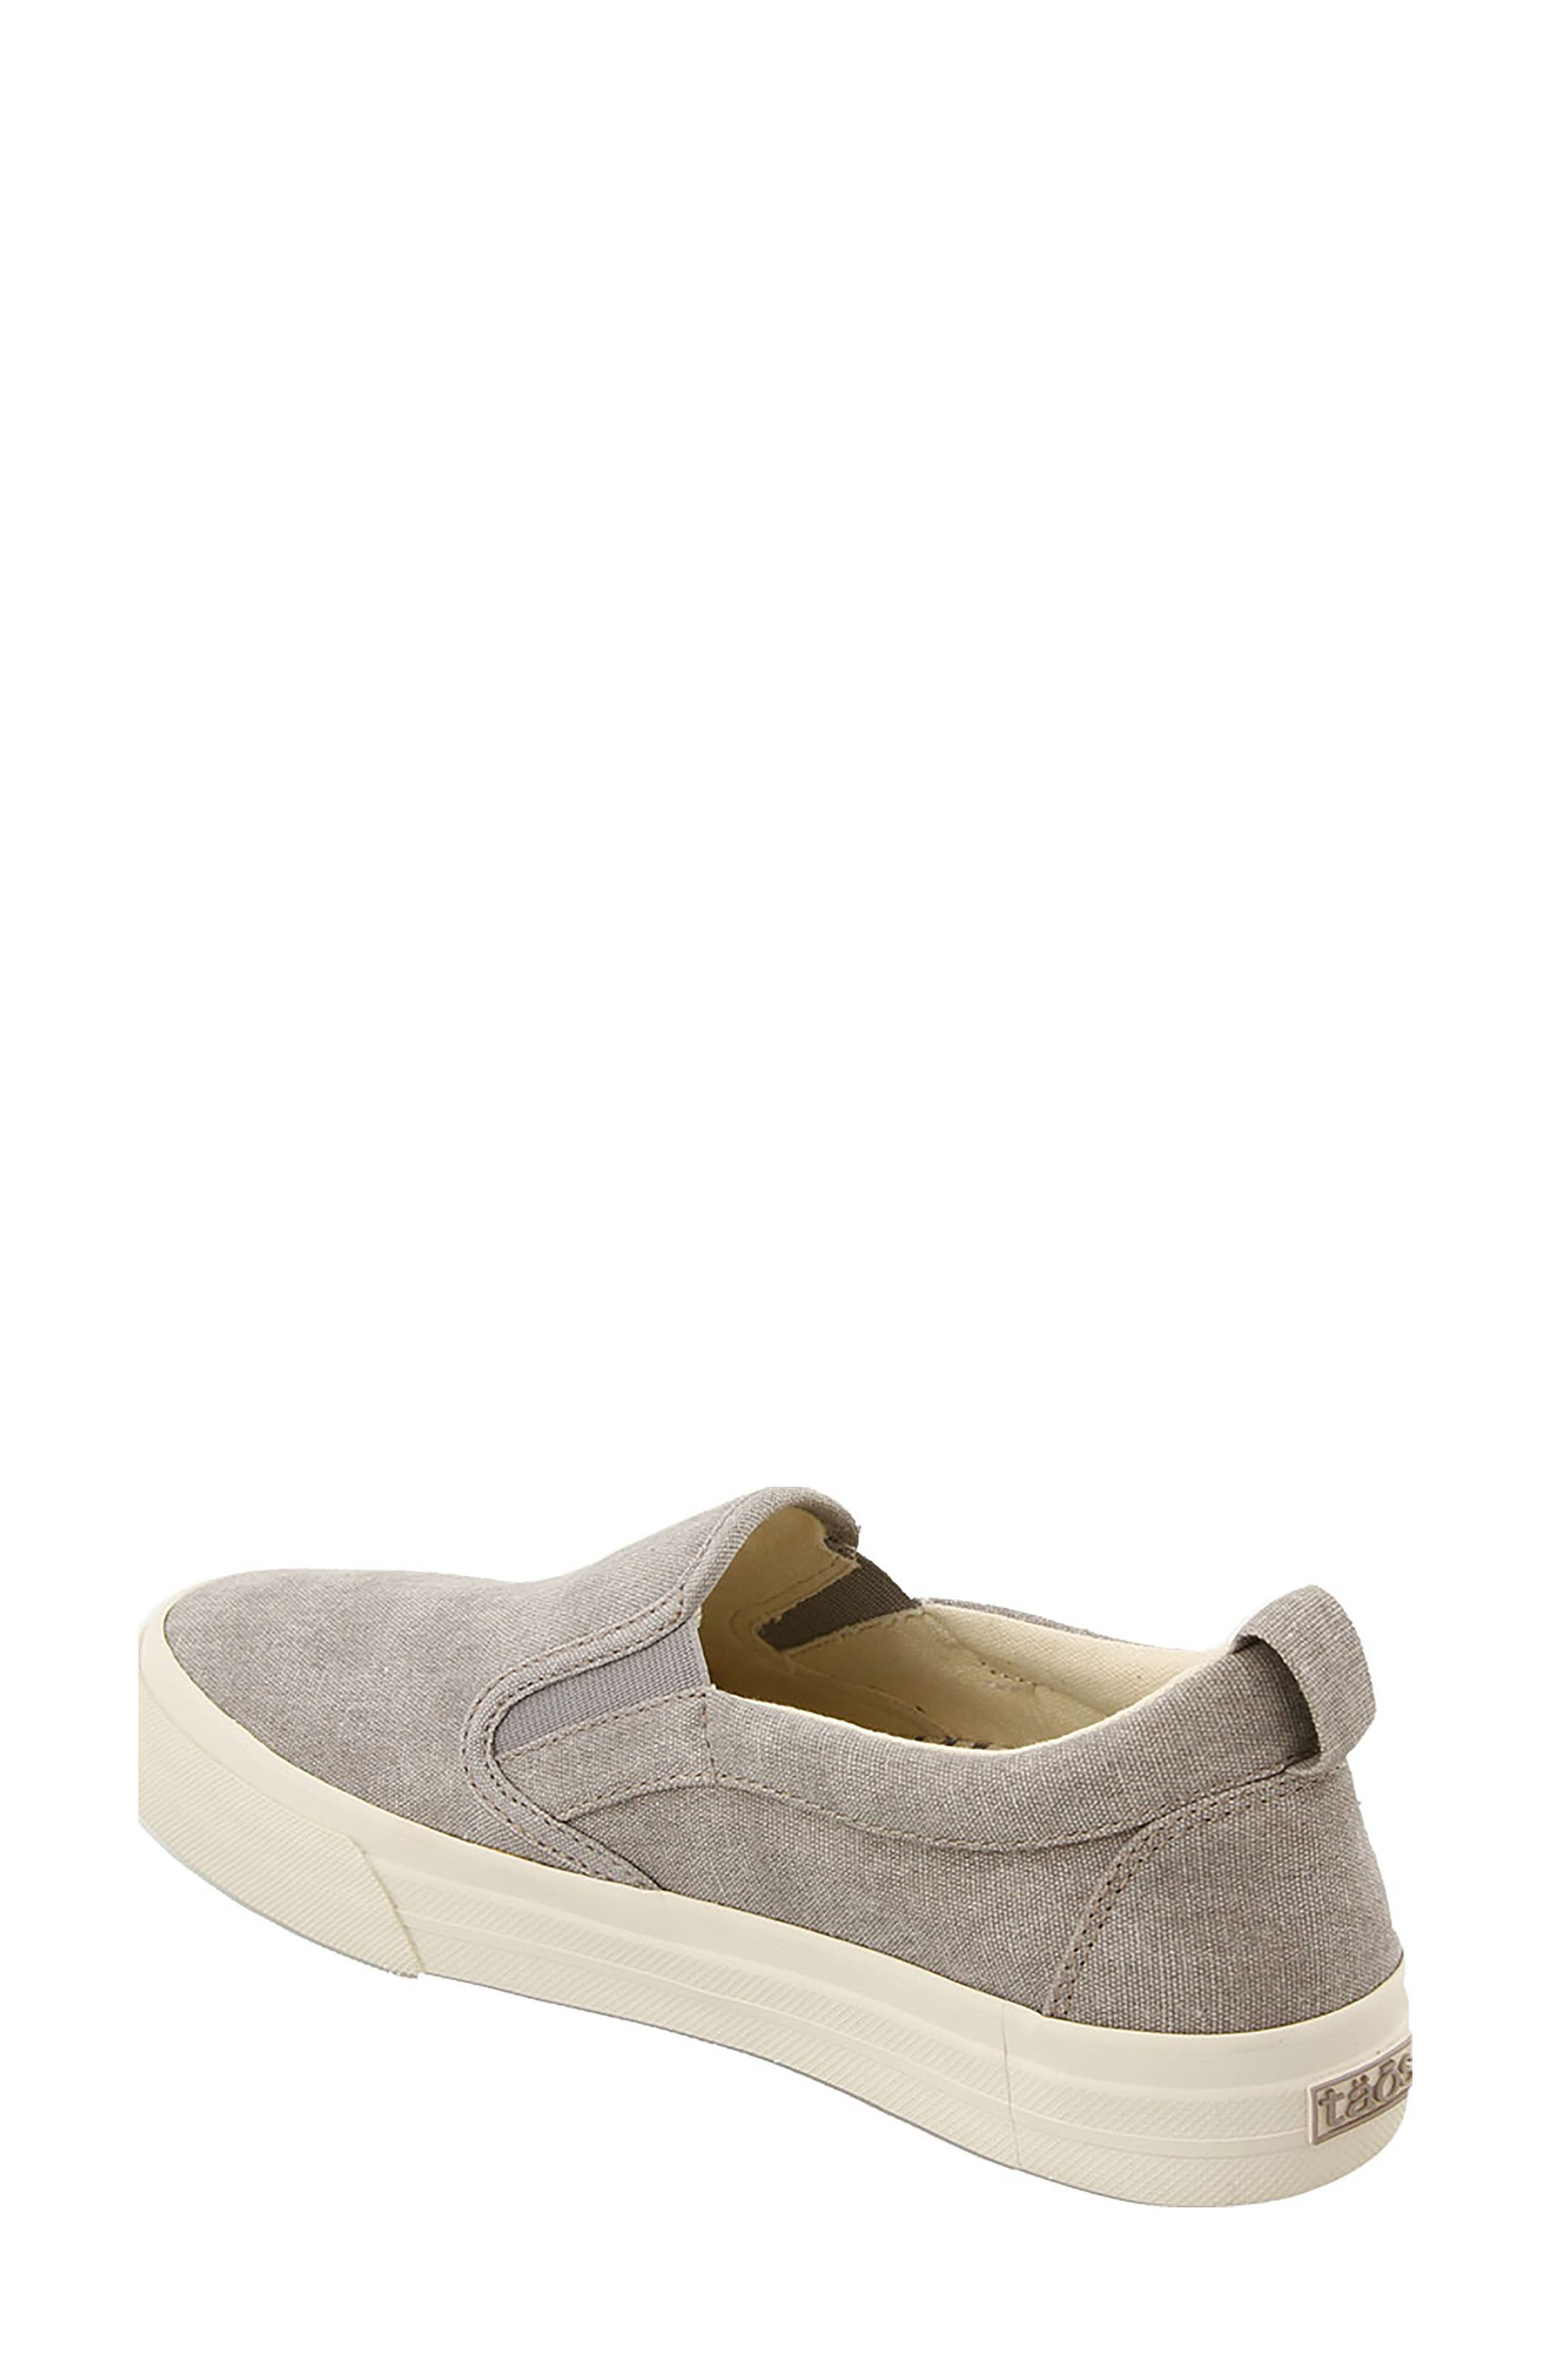 Soul Slip-On Sneaker,                             Alternate thumbnail 2, color,                             GREY WASH CANVAS